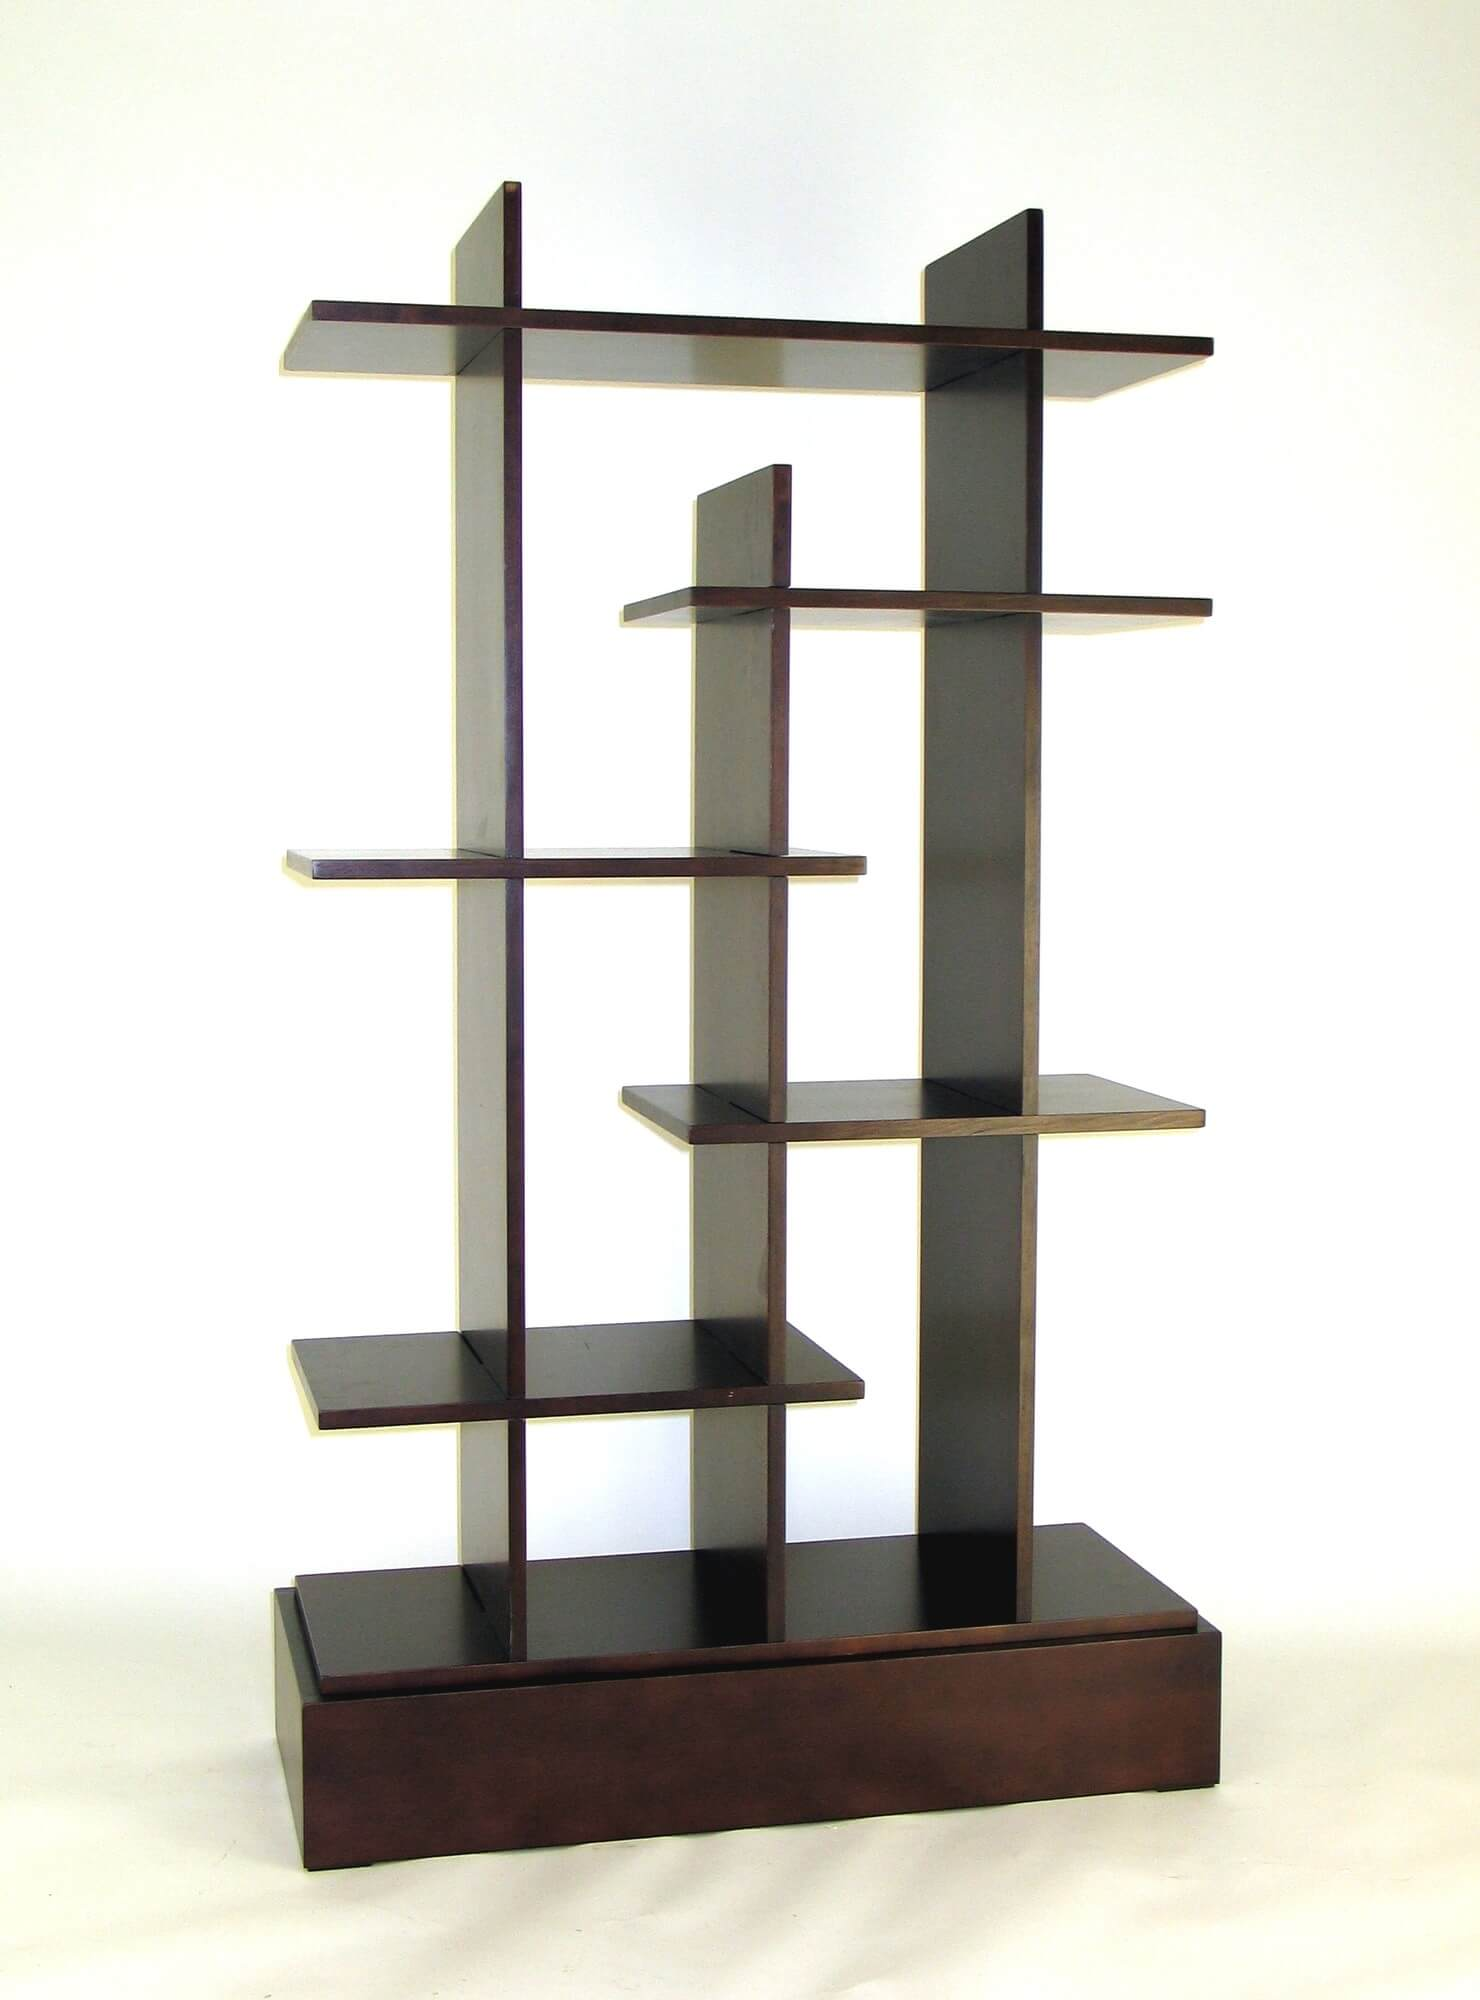 Here's a modern simple backless 6-cube shelf that looks great in a mid-century room or a contemporary room with plenty of wood.